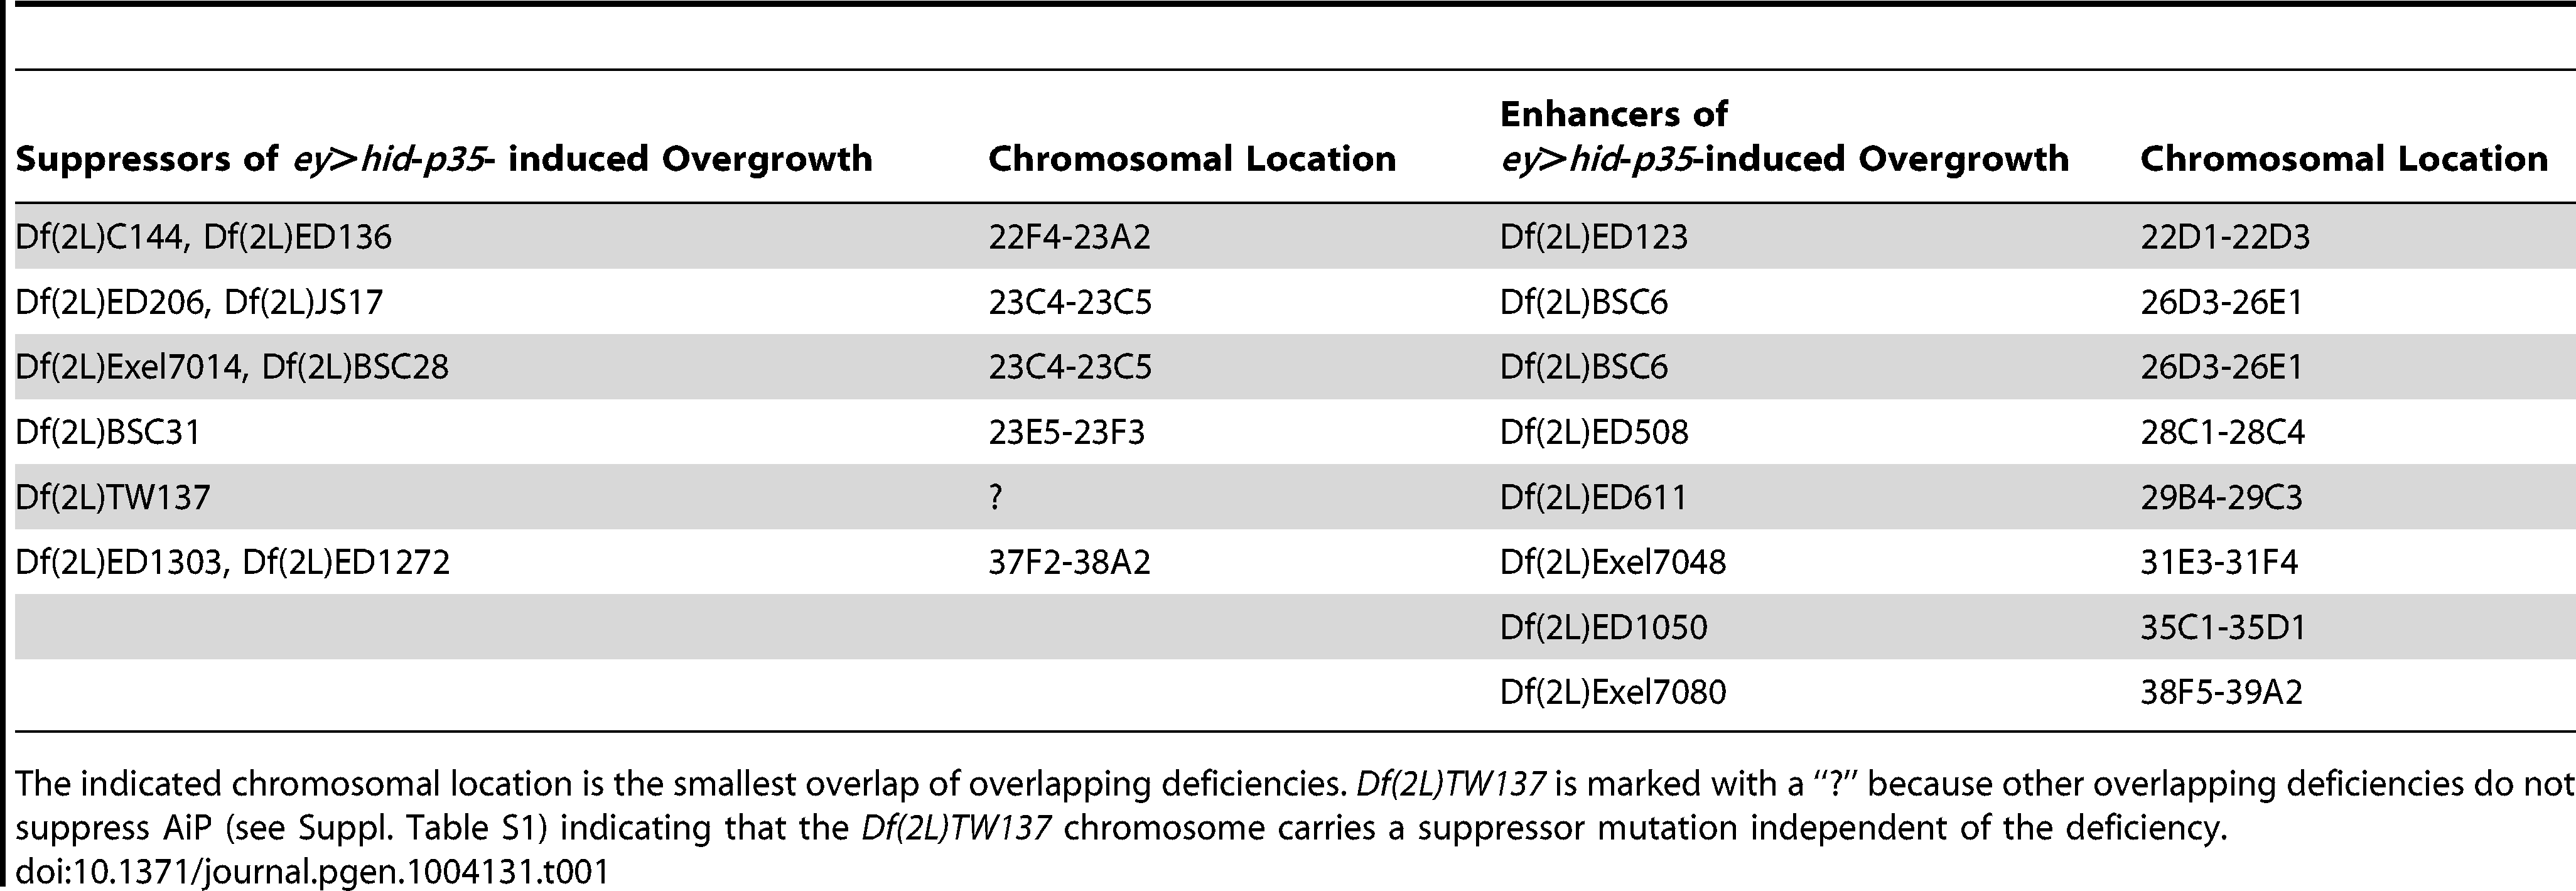 Deficiencies that modify the <i>ey&gt;hid-p35</i>-induced AiP phenotype as suppressors or enhancers.